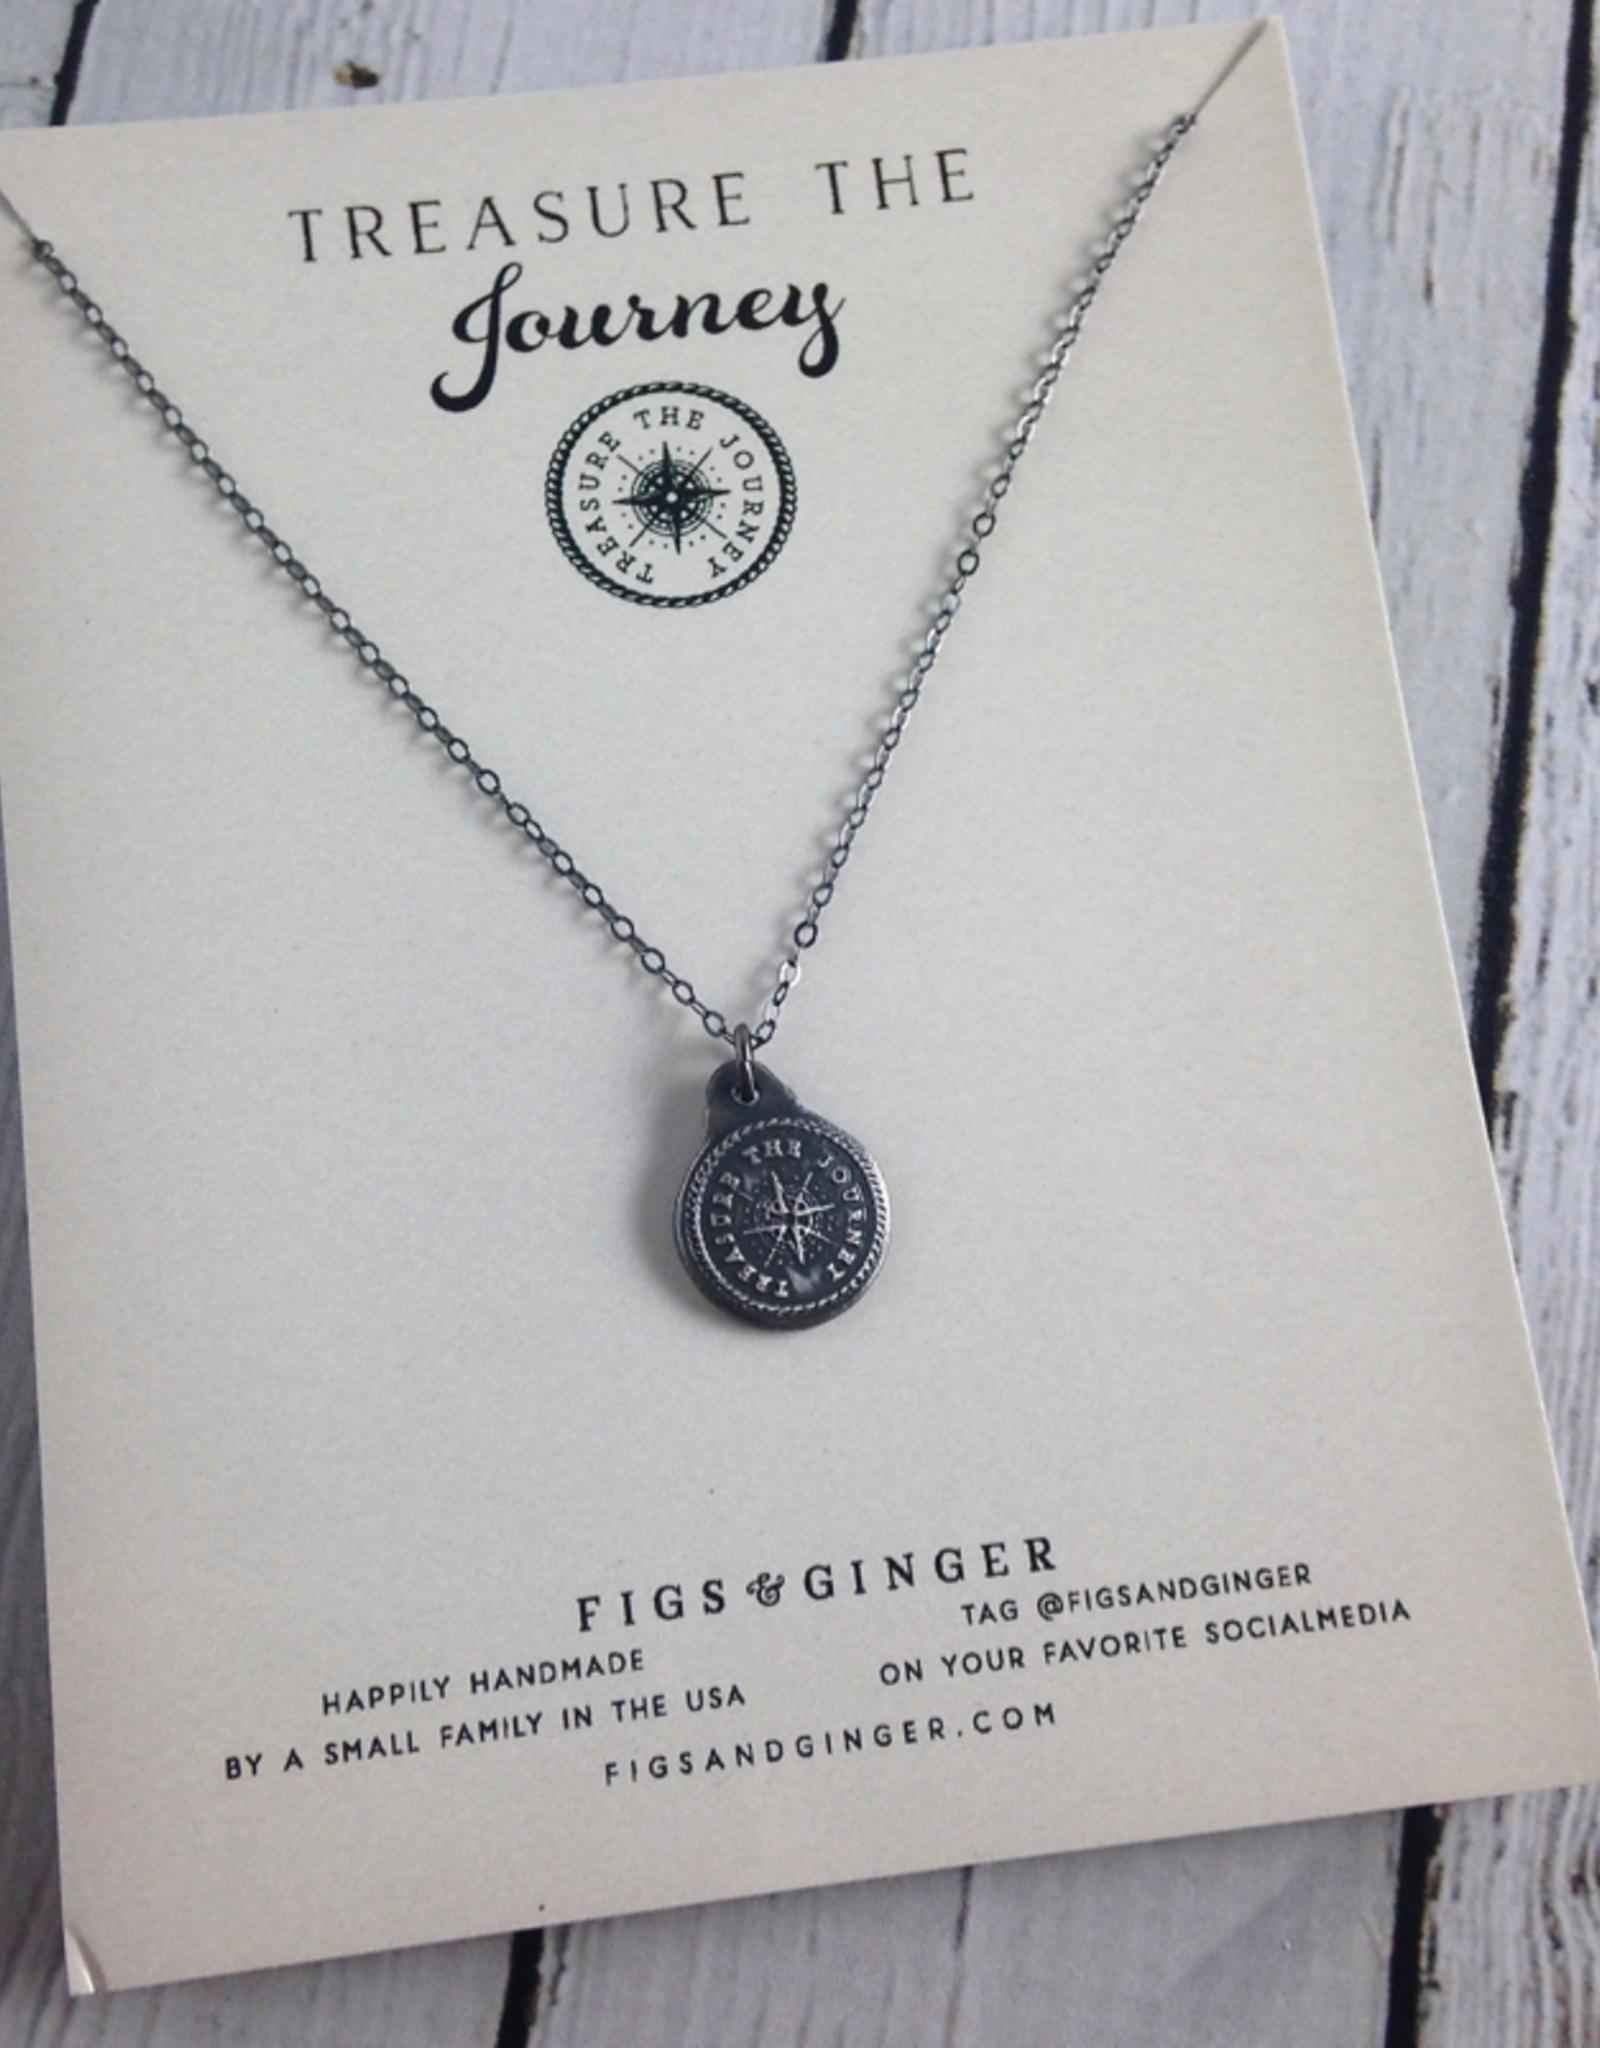 FIGS&GINGER Treasure the Journey Medallion Necklace made of Recycled Sterling Silver